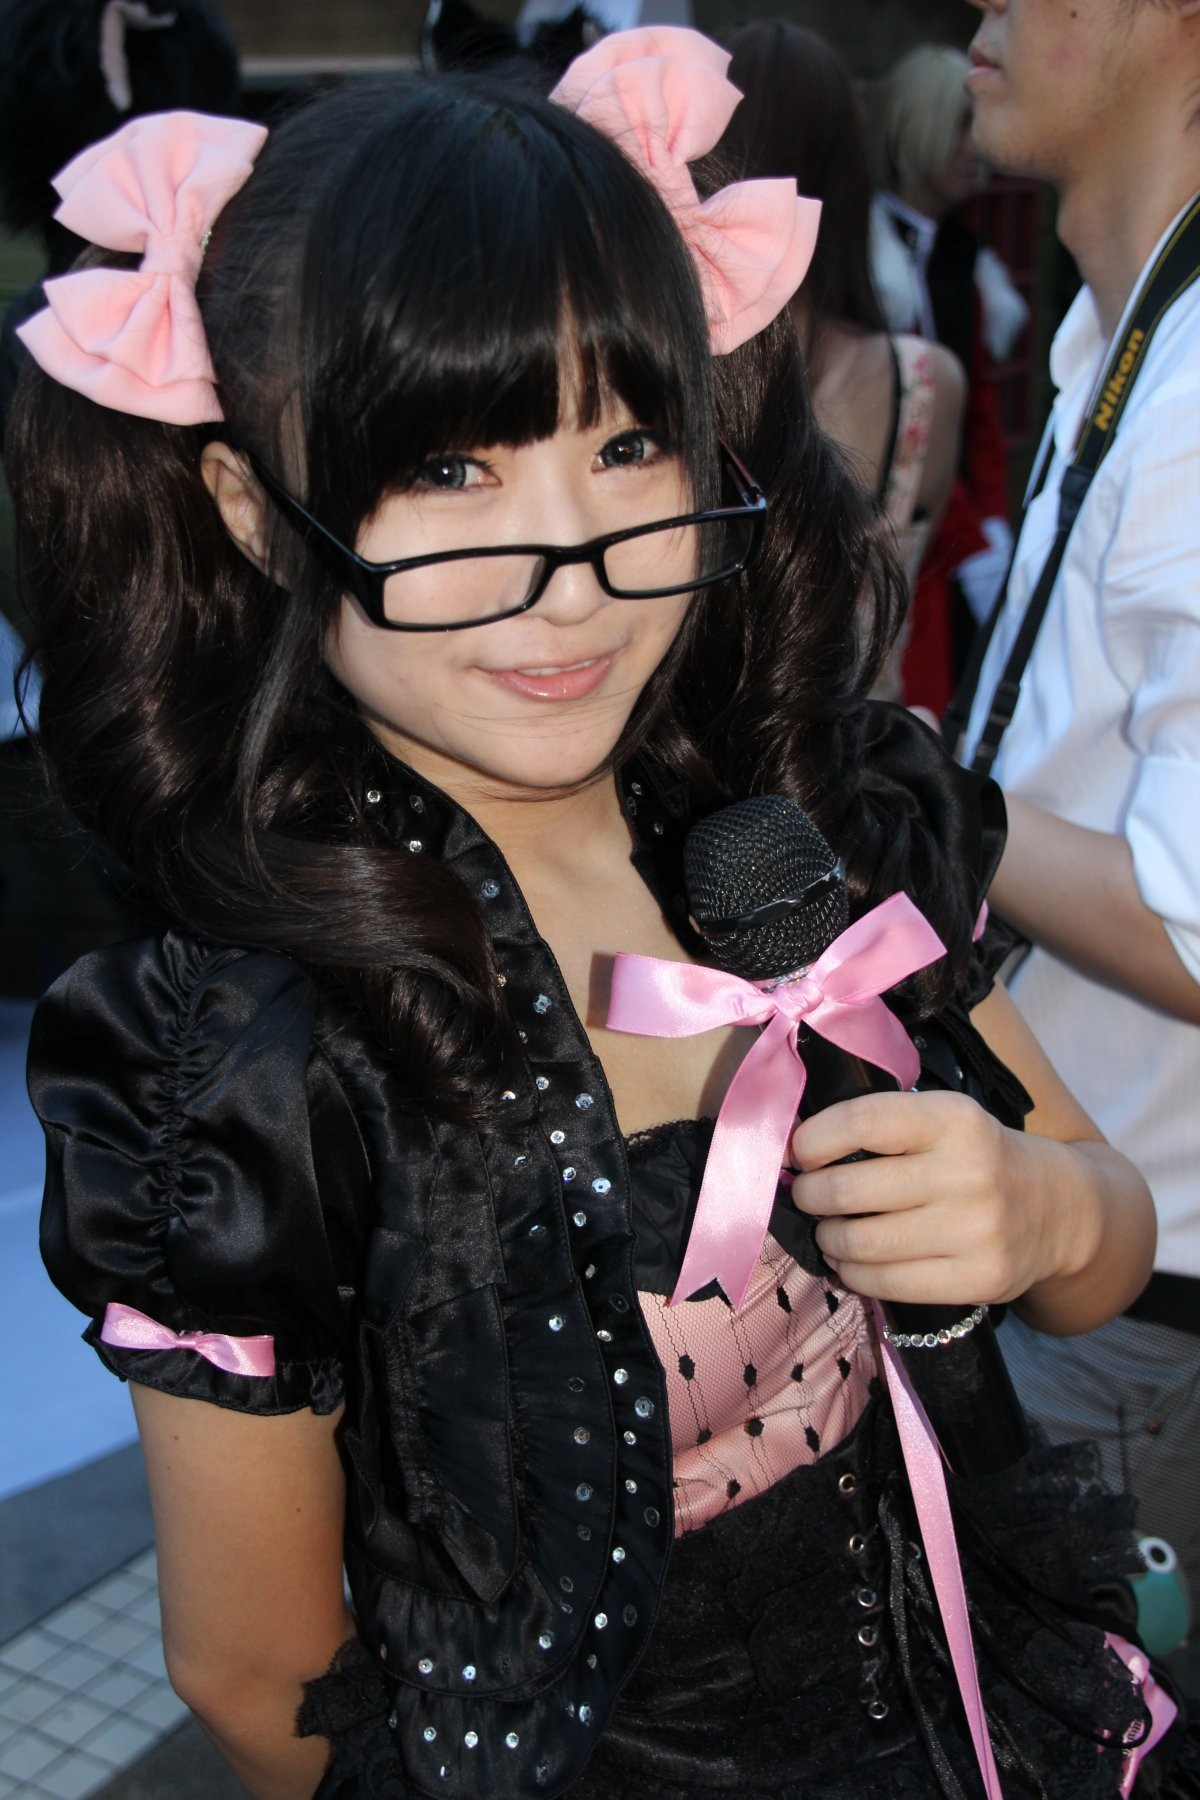 Bangkok - Cosplay / Festival J-Trends in Town am MBK XXXVIII